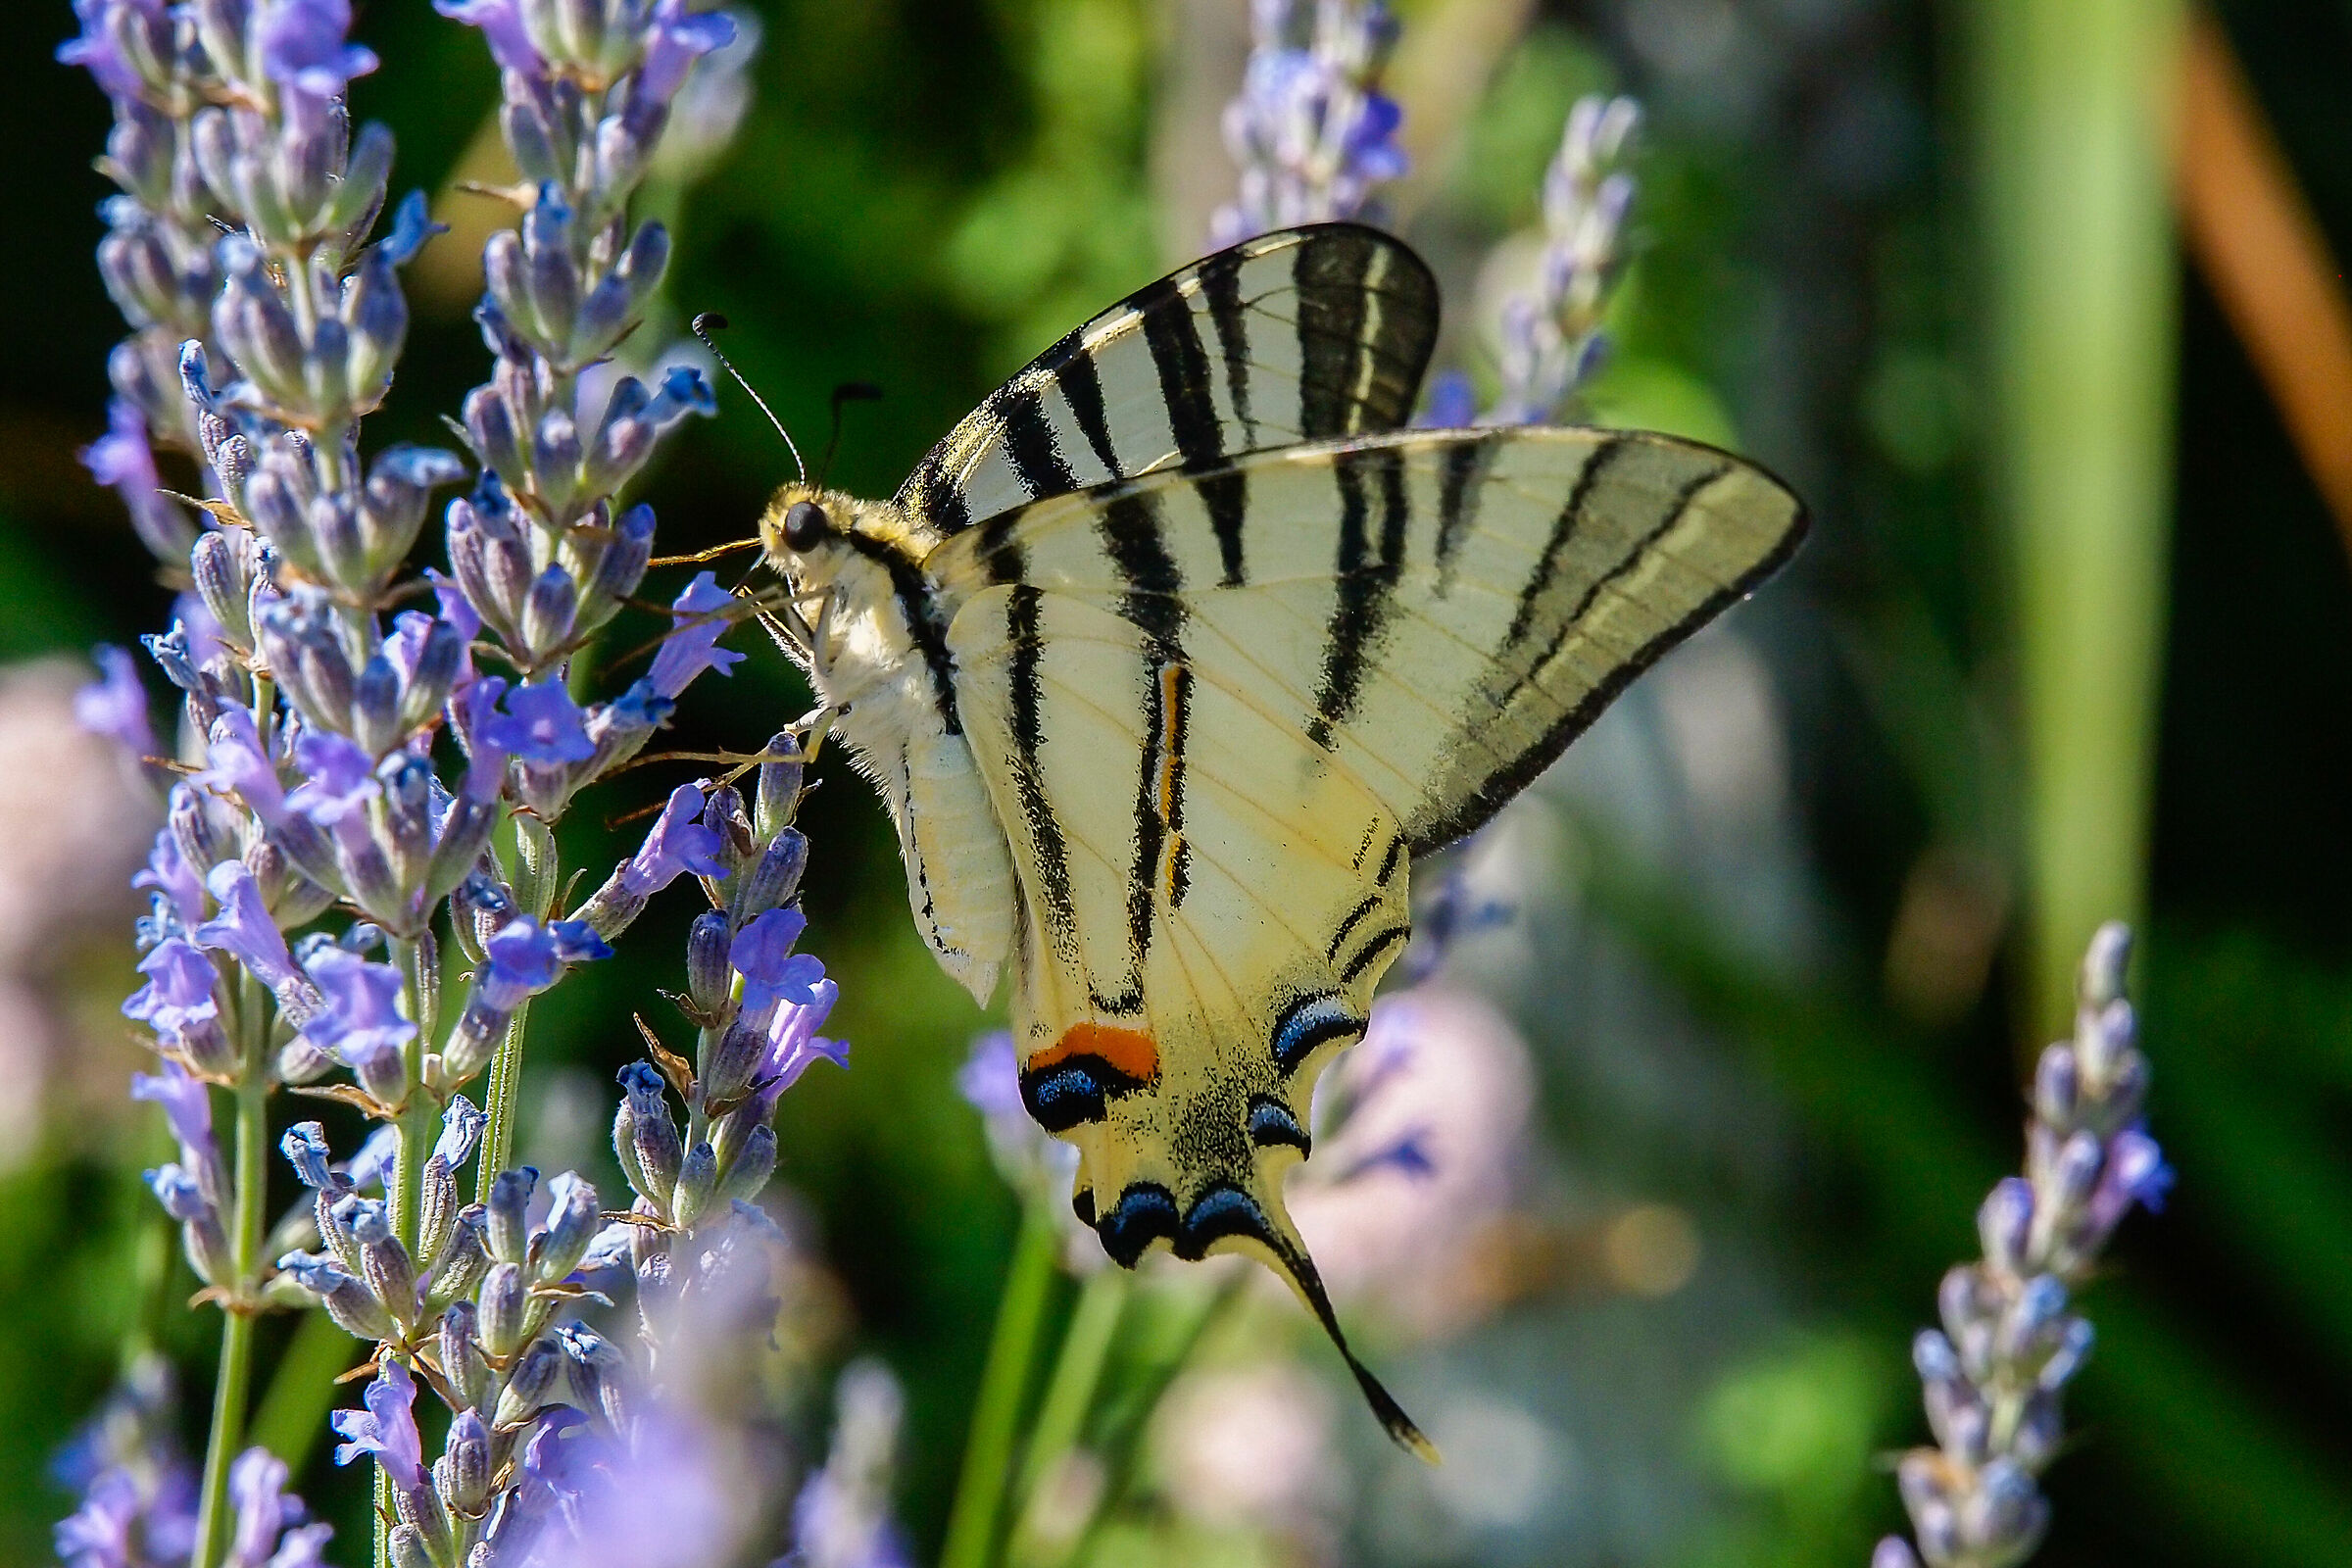 Swallow-tailed yellow butterfly, podalirius Iphiclides...